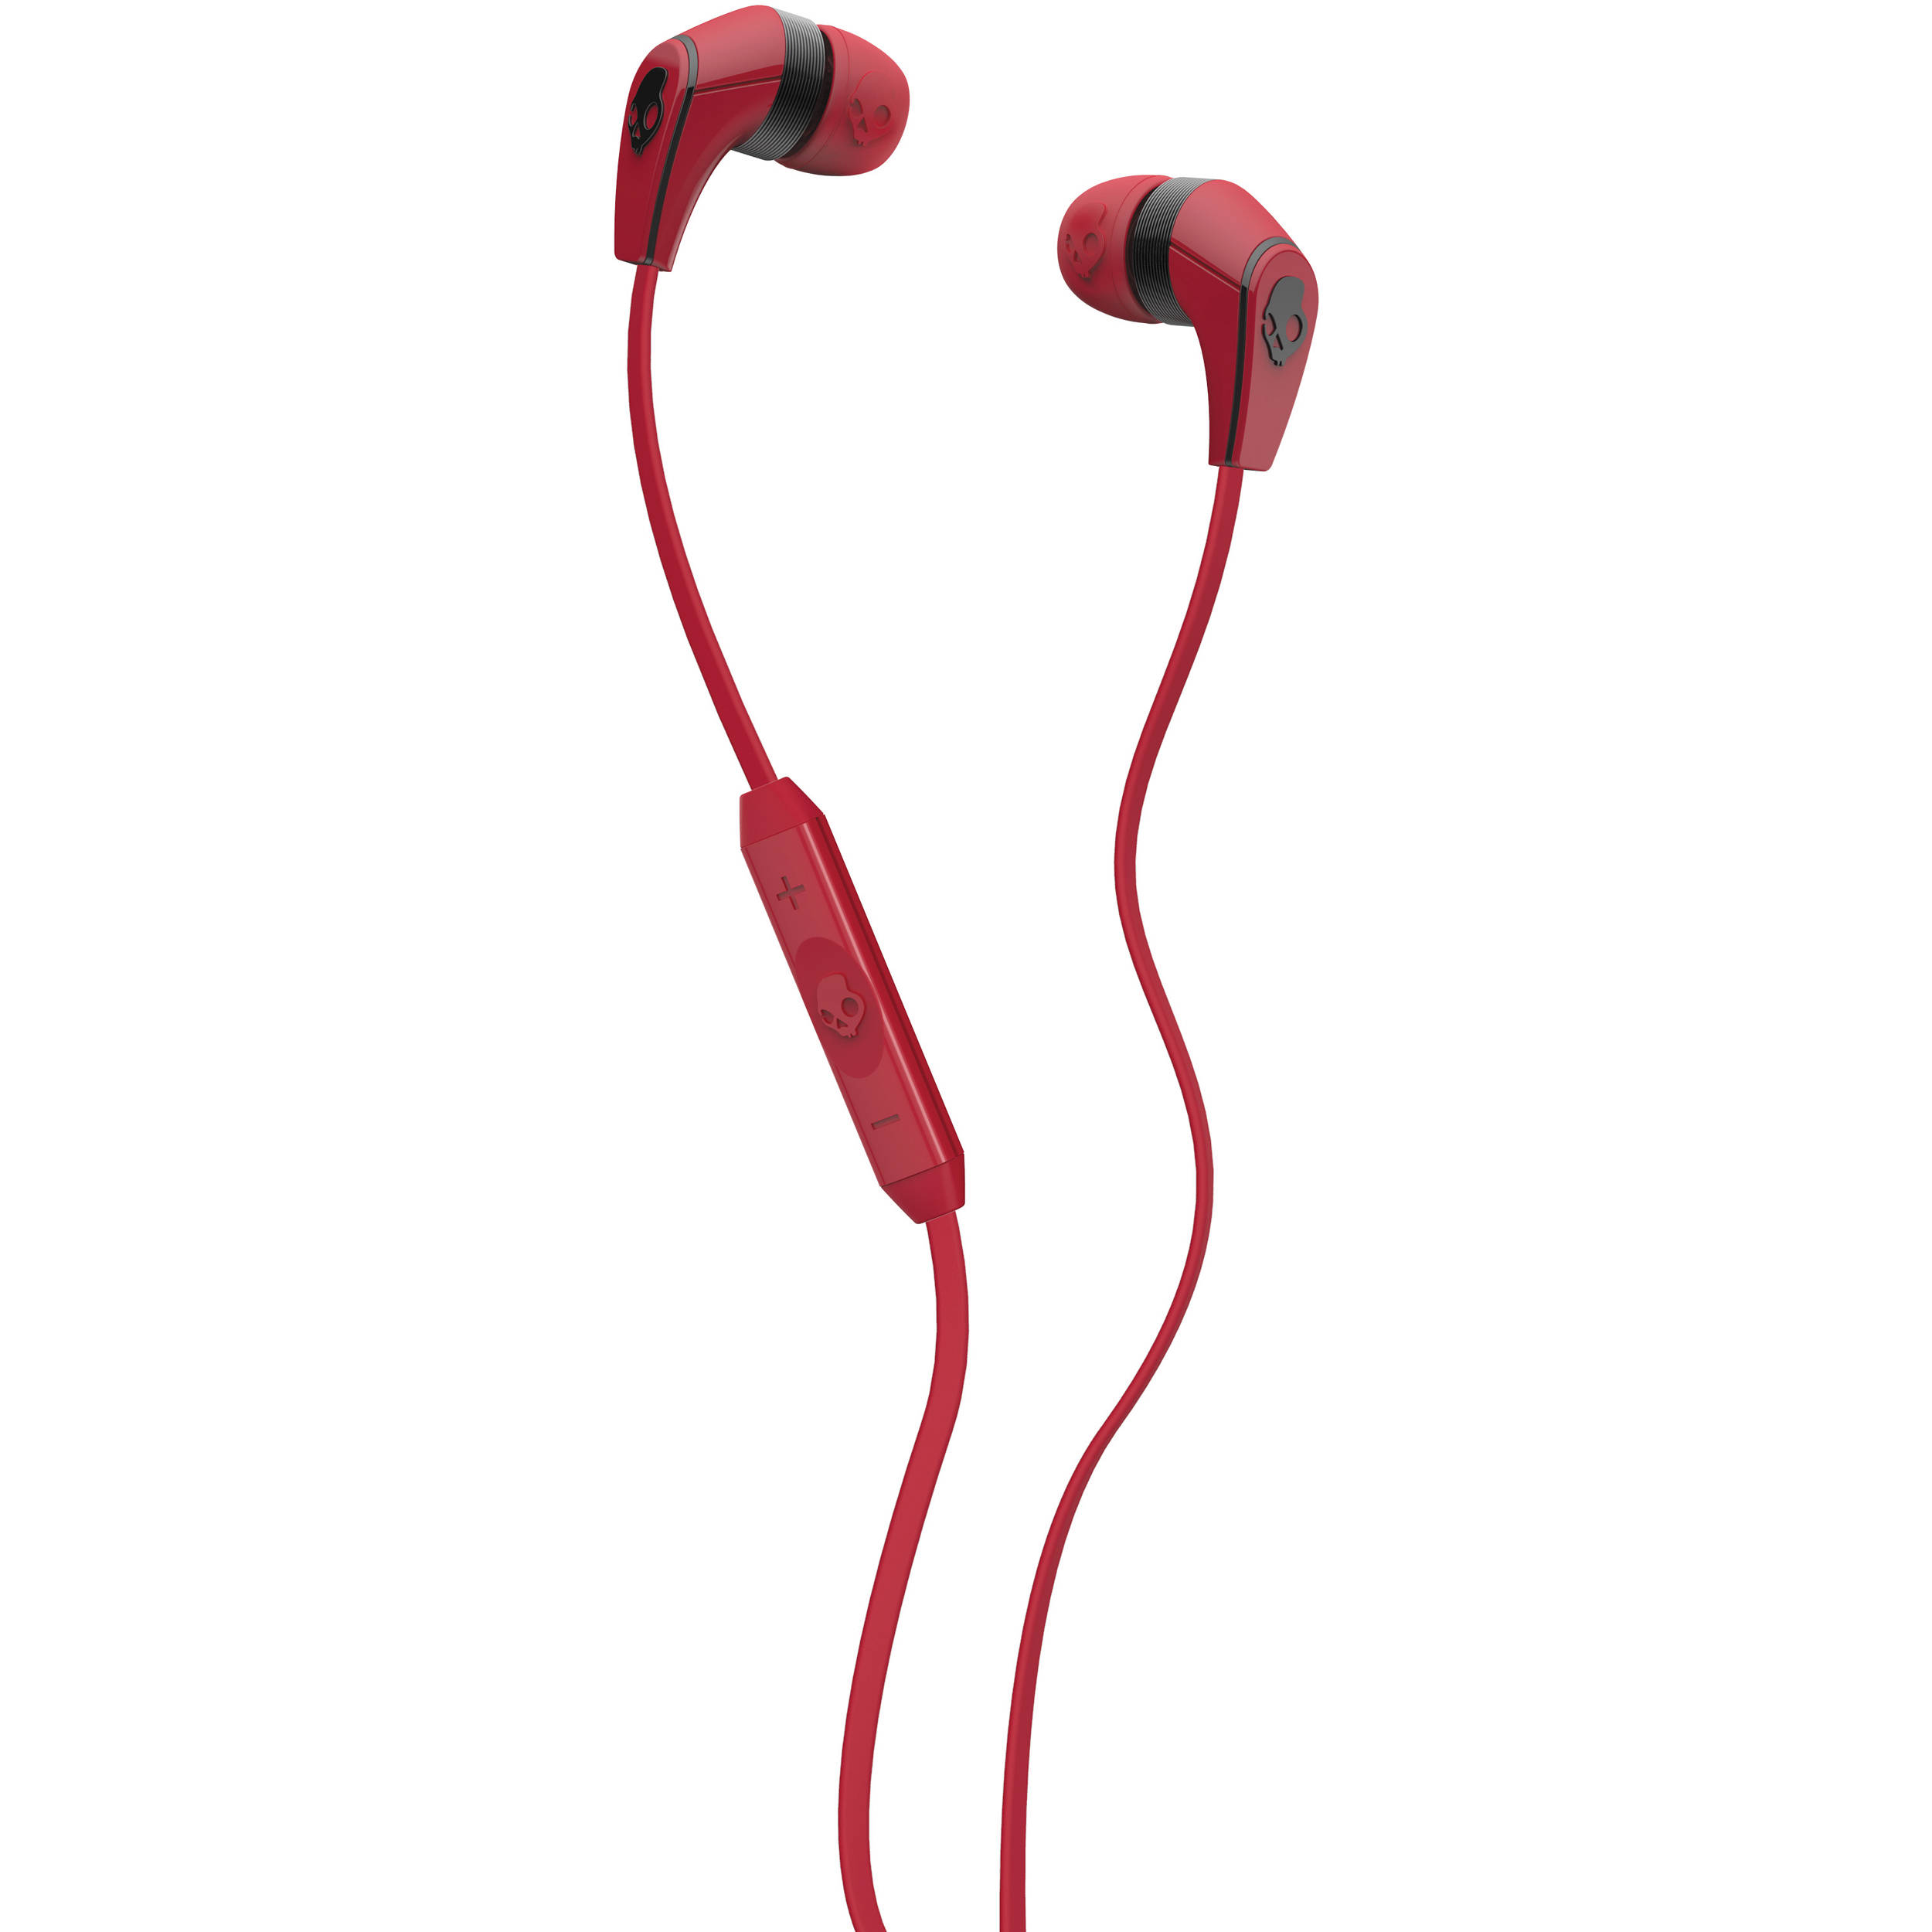 Earbuds skullcandy red - Sudio TVÅ - earphones with mic Overview